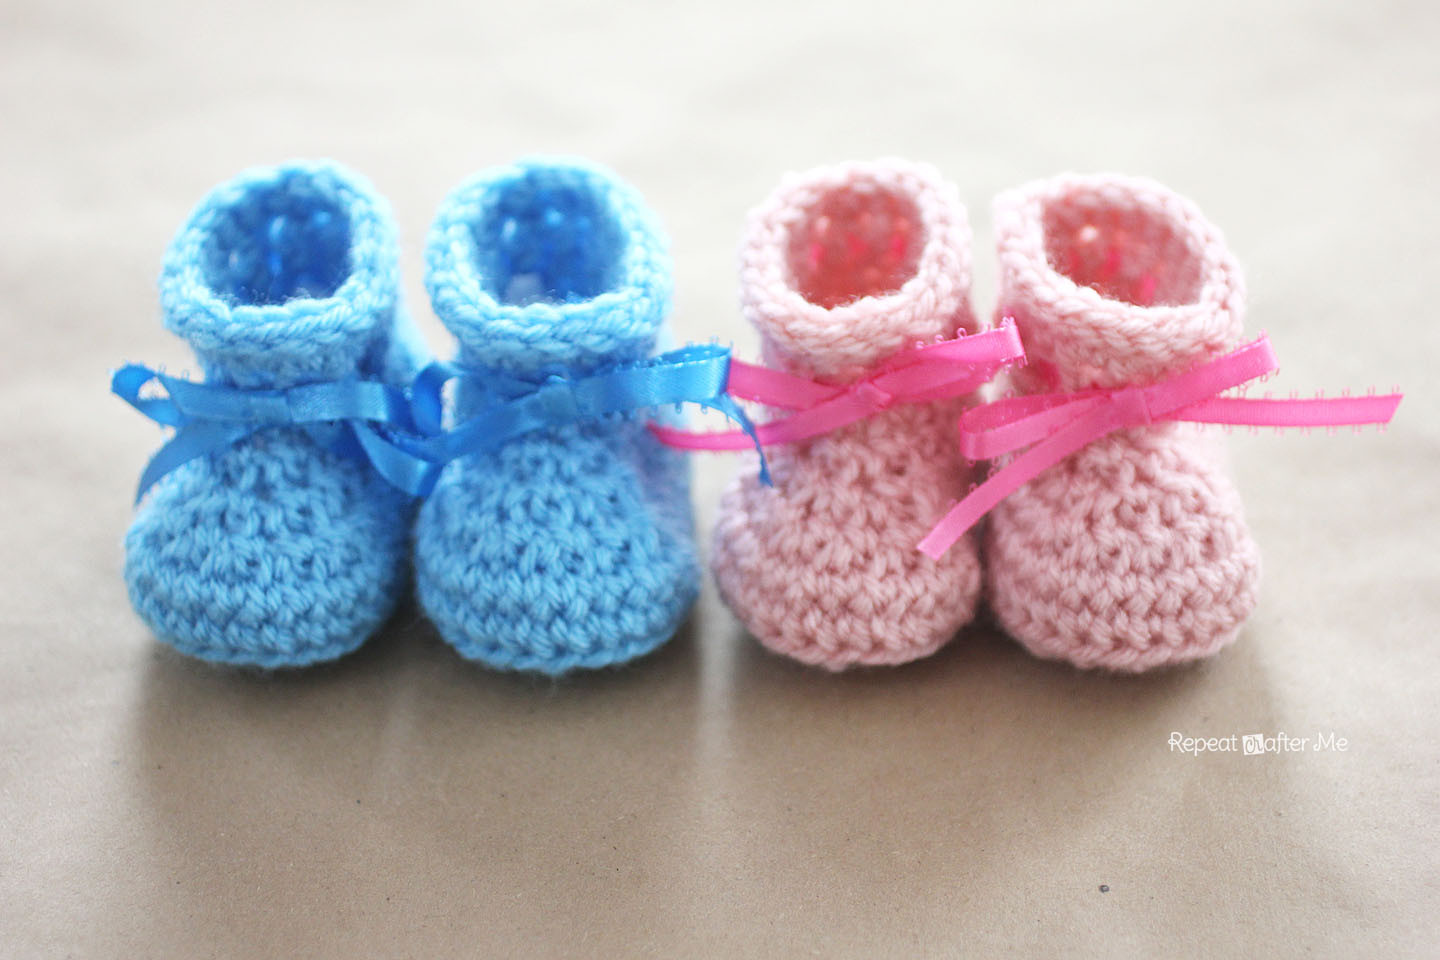 Free Baby Bootie Patterns Lovely Booties for Baby Of Top 50 Ideas Free Baby Bootie Patterns